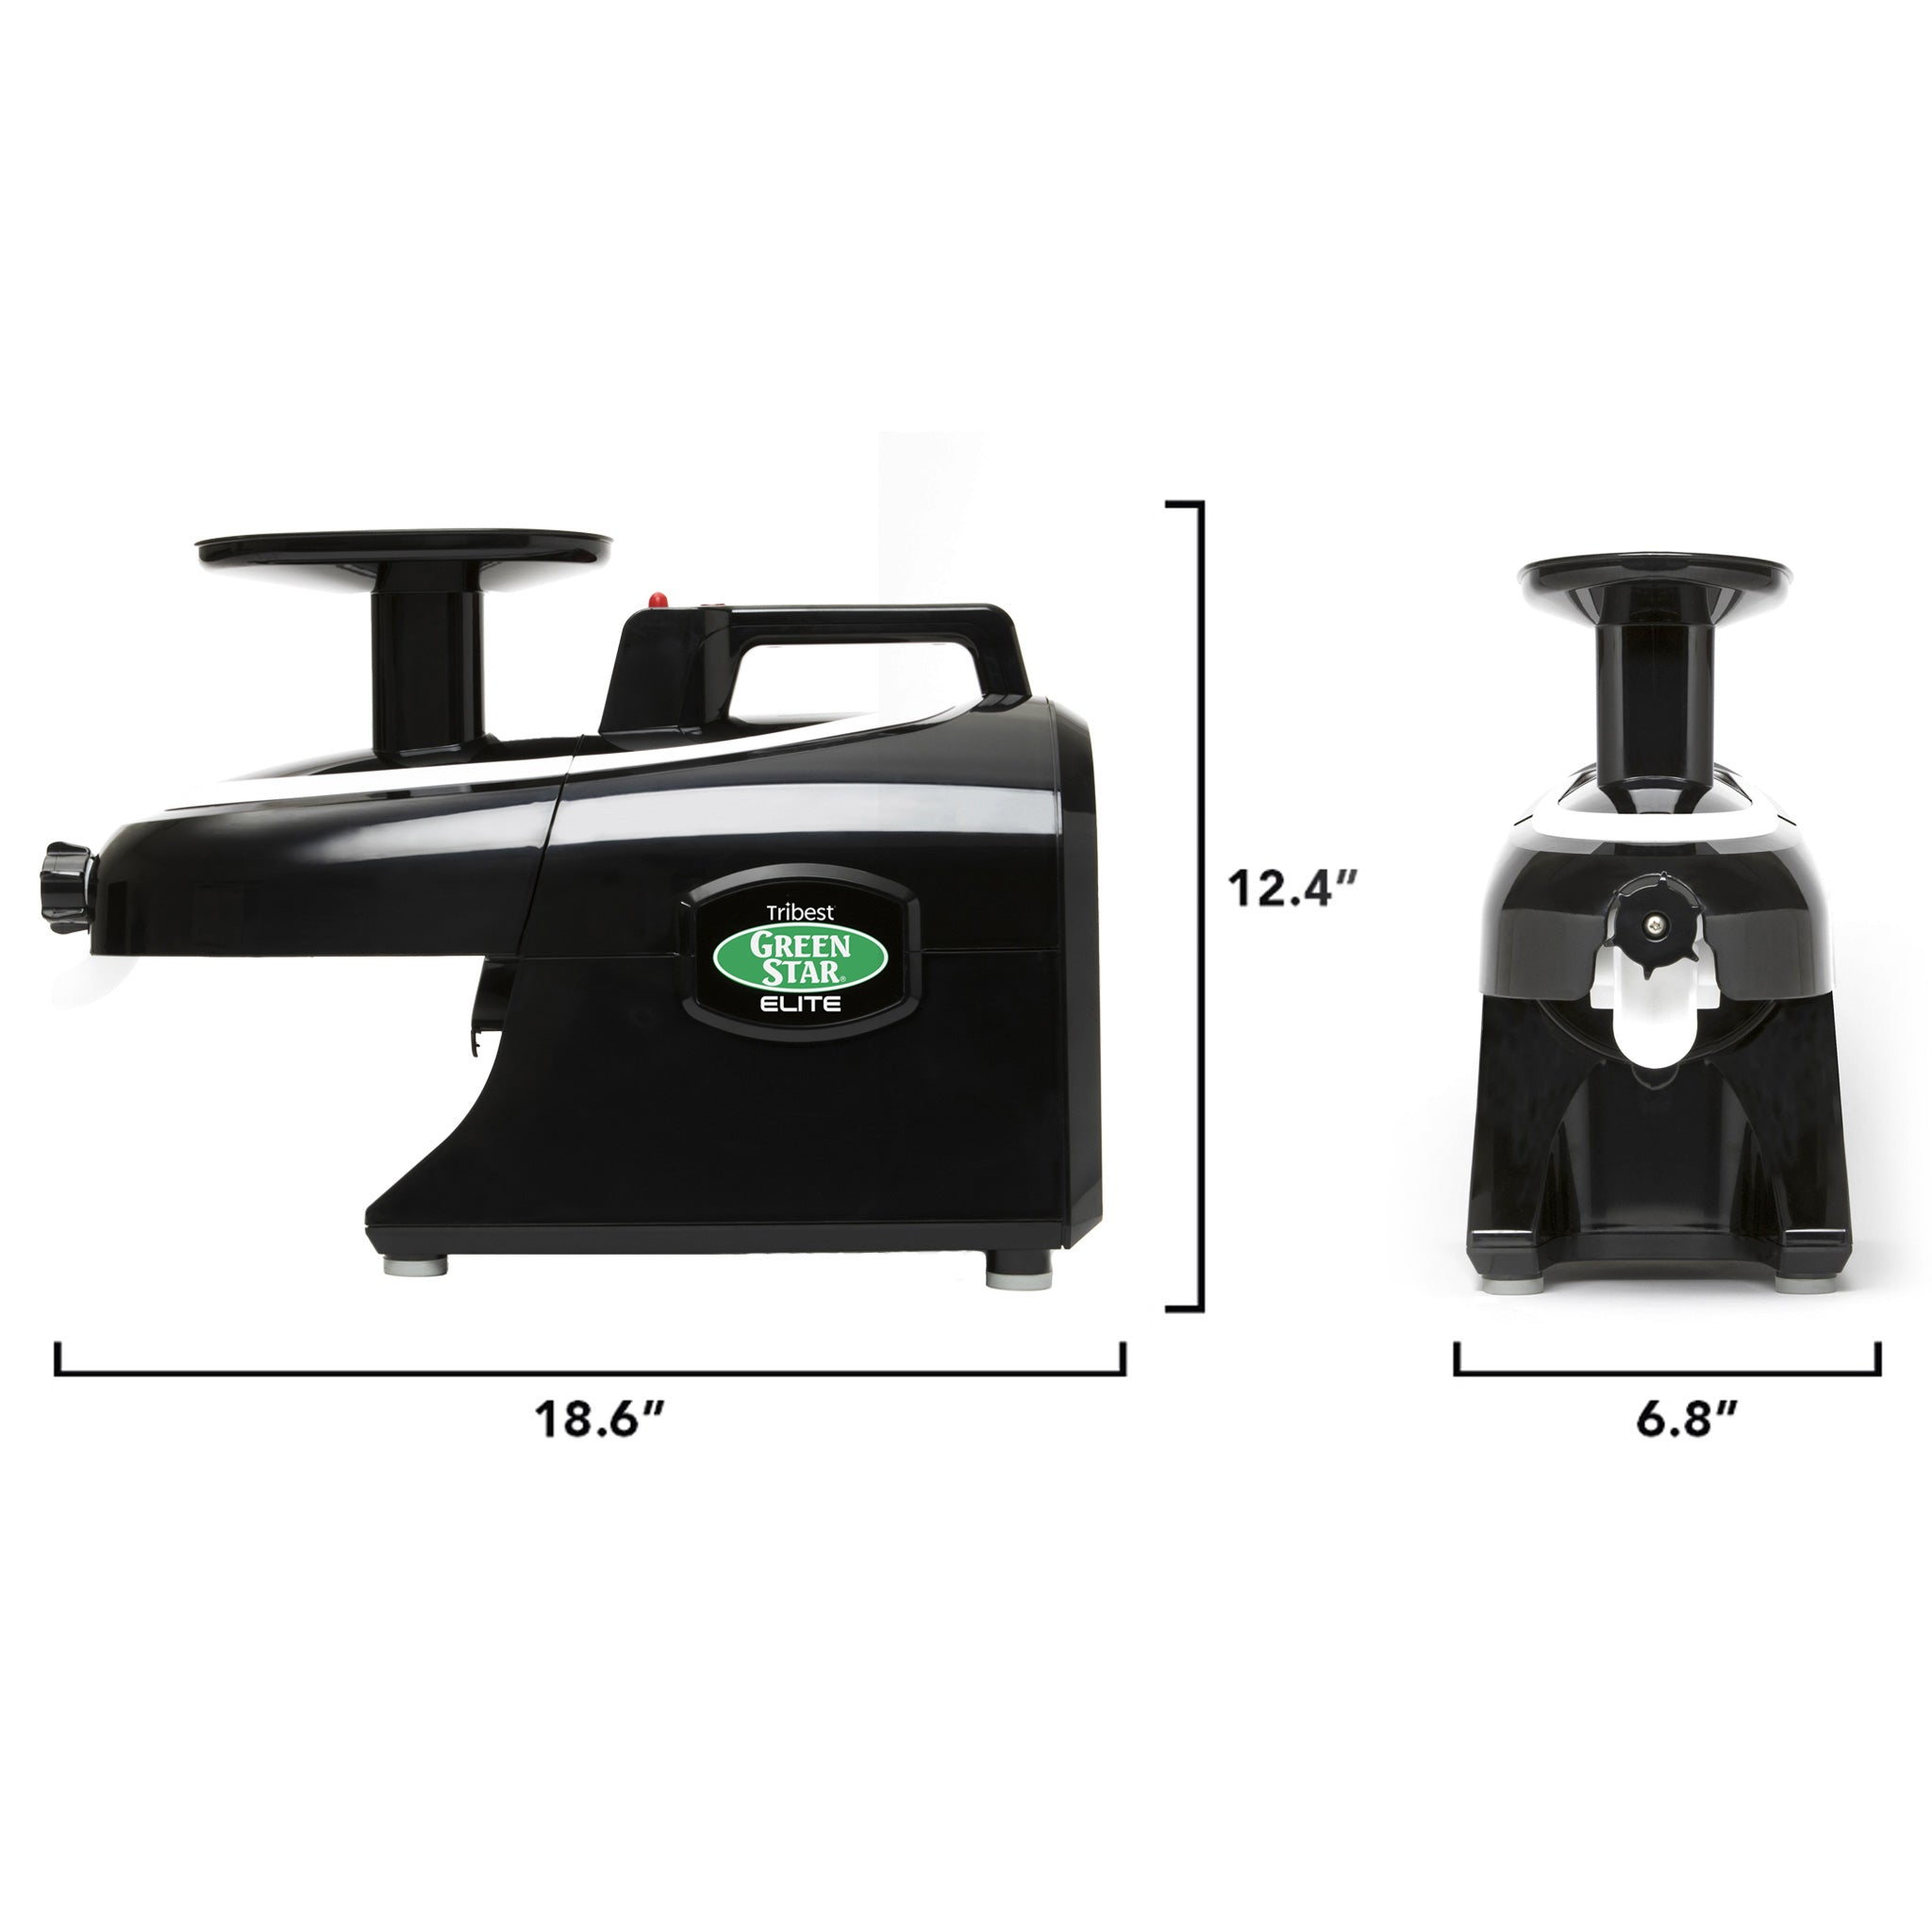 Greenstar® Elite Jumbo Twin Gear Slow Masticating Juicer in Black GSE-5010-B - Size 18.6